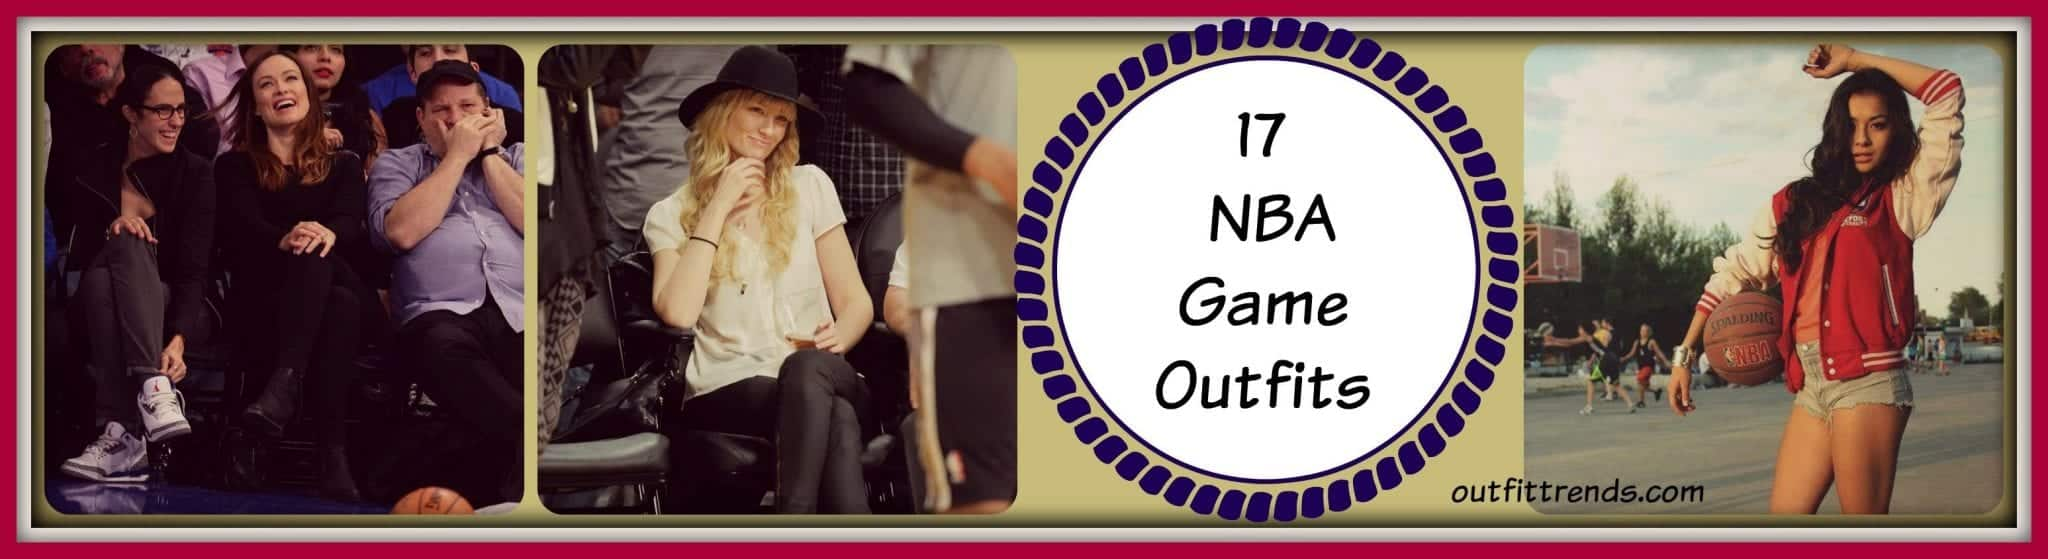 Outfit Ideas for NBA Game 17 Ideas What to Wear to NBA Game